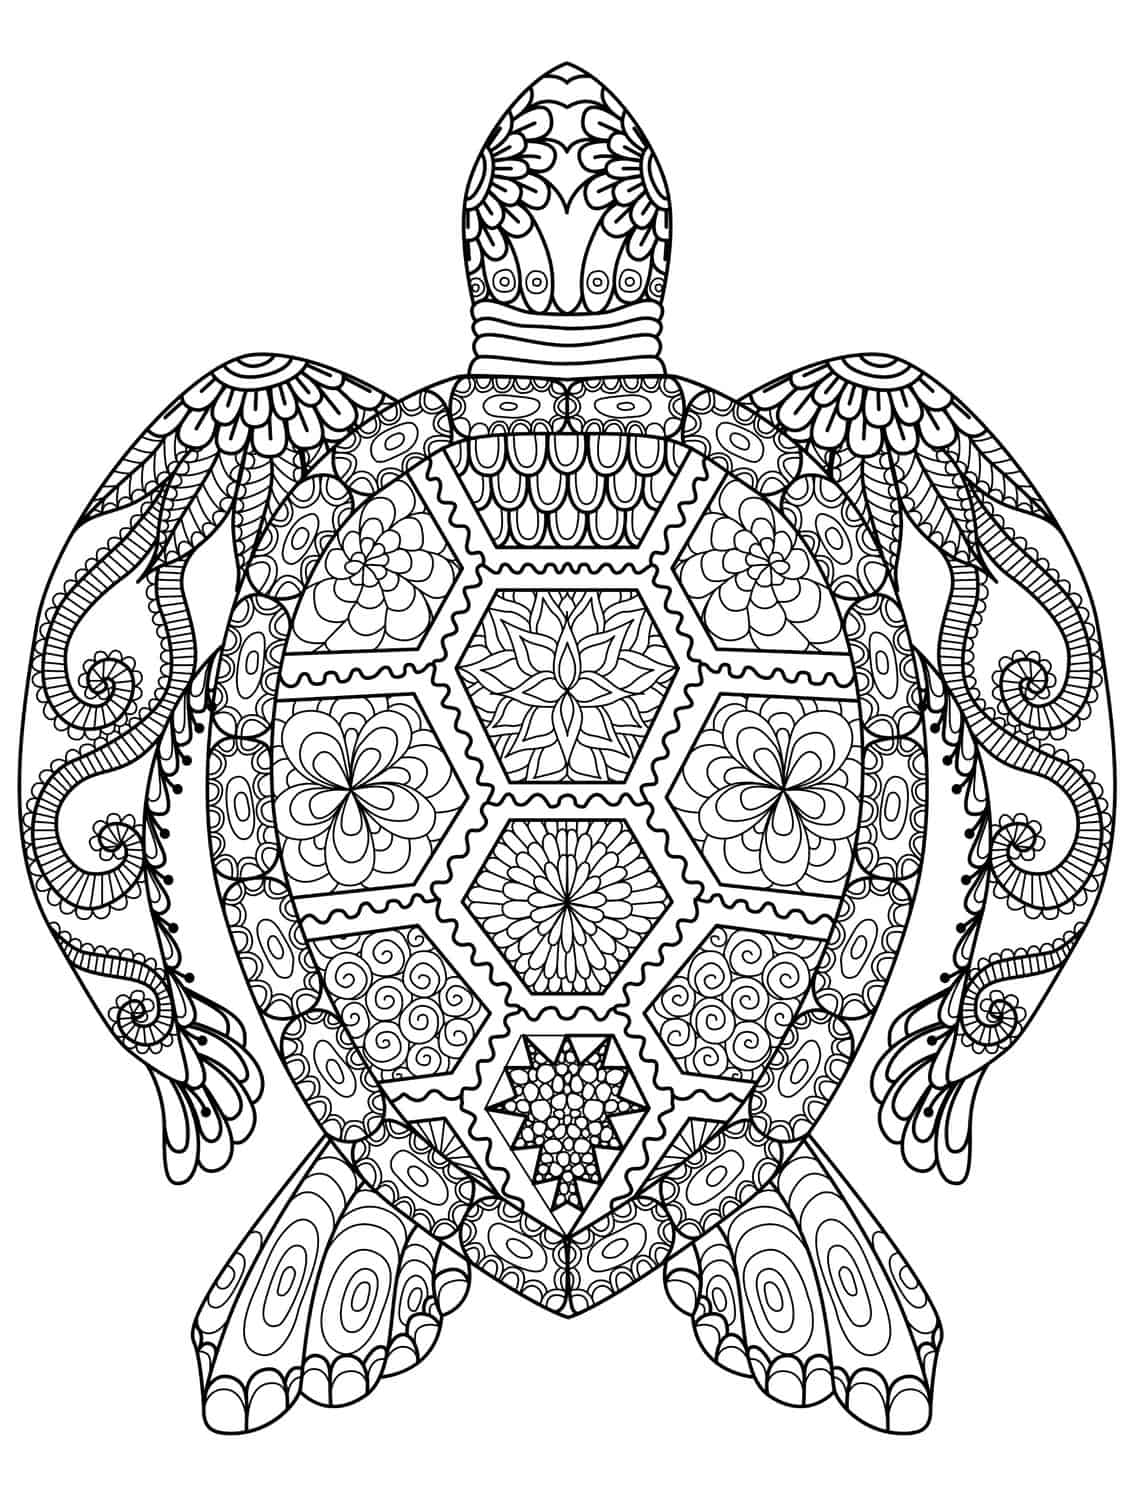 coloring pages for adults turtle 296 best images about under the sea coloring pages for adults pages coloring turtle for